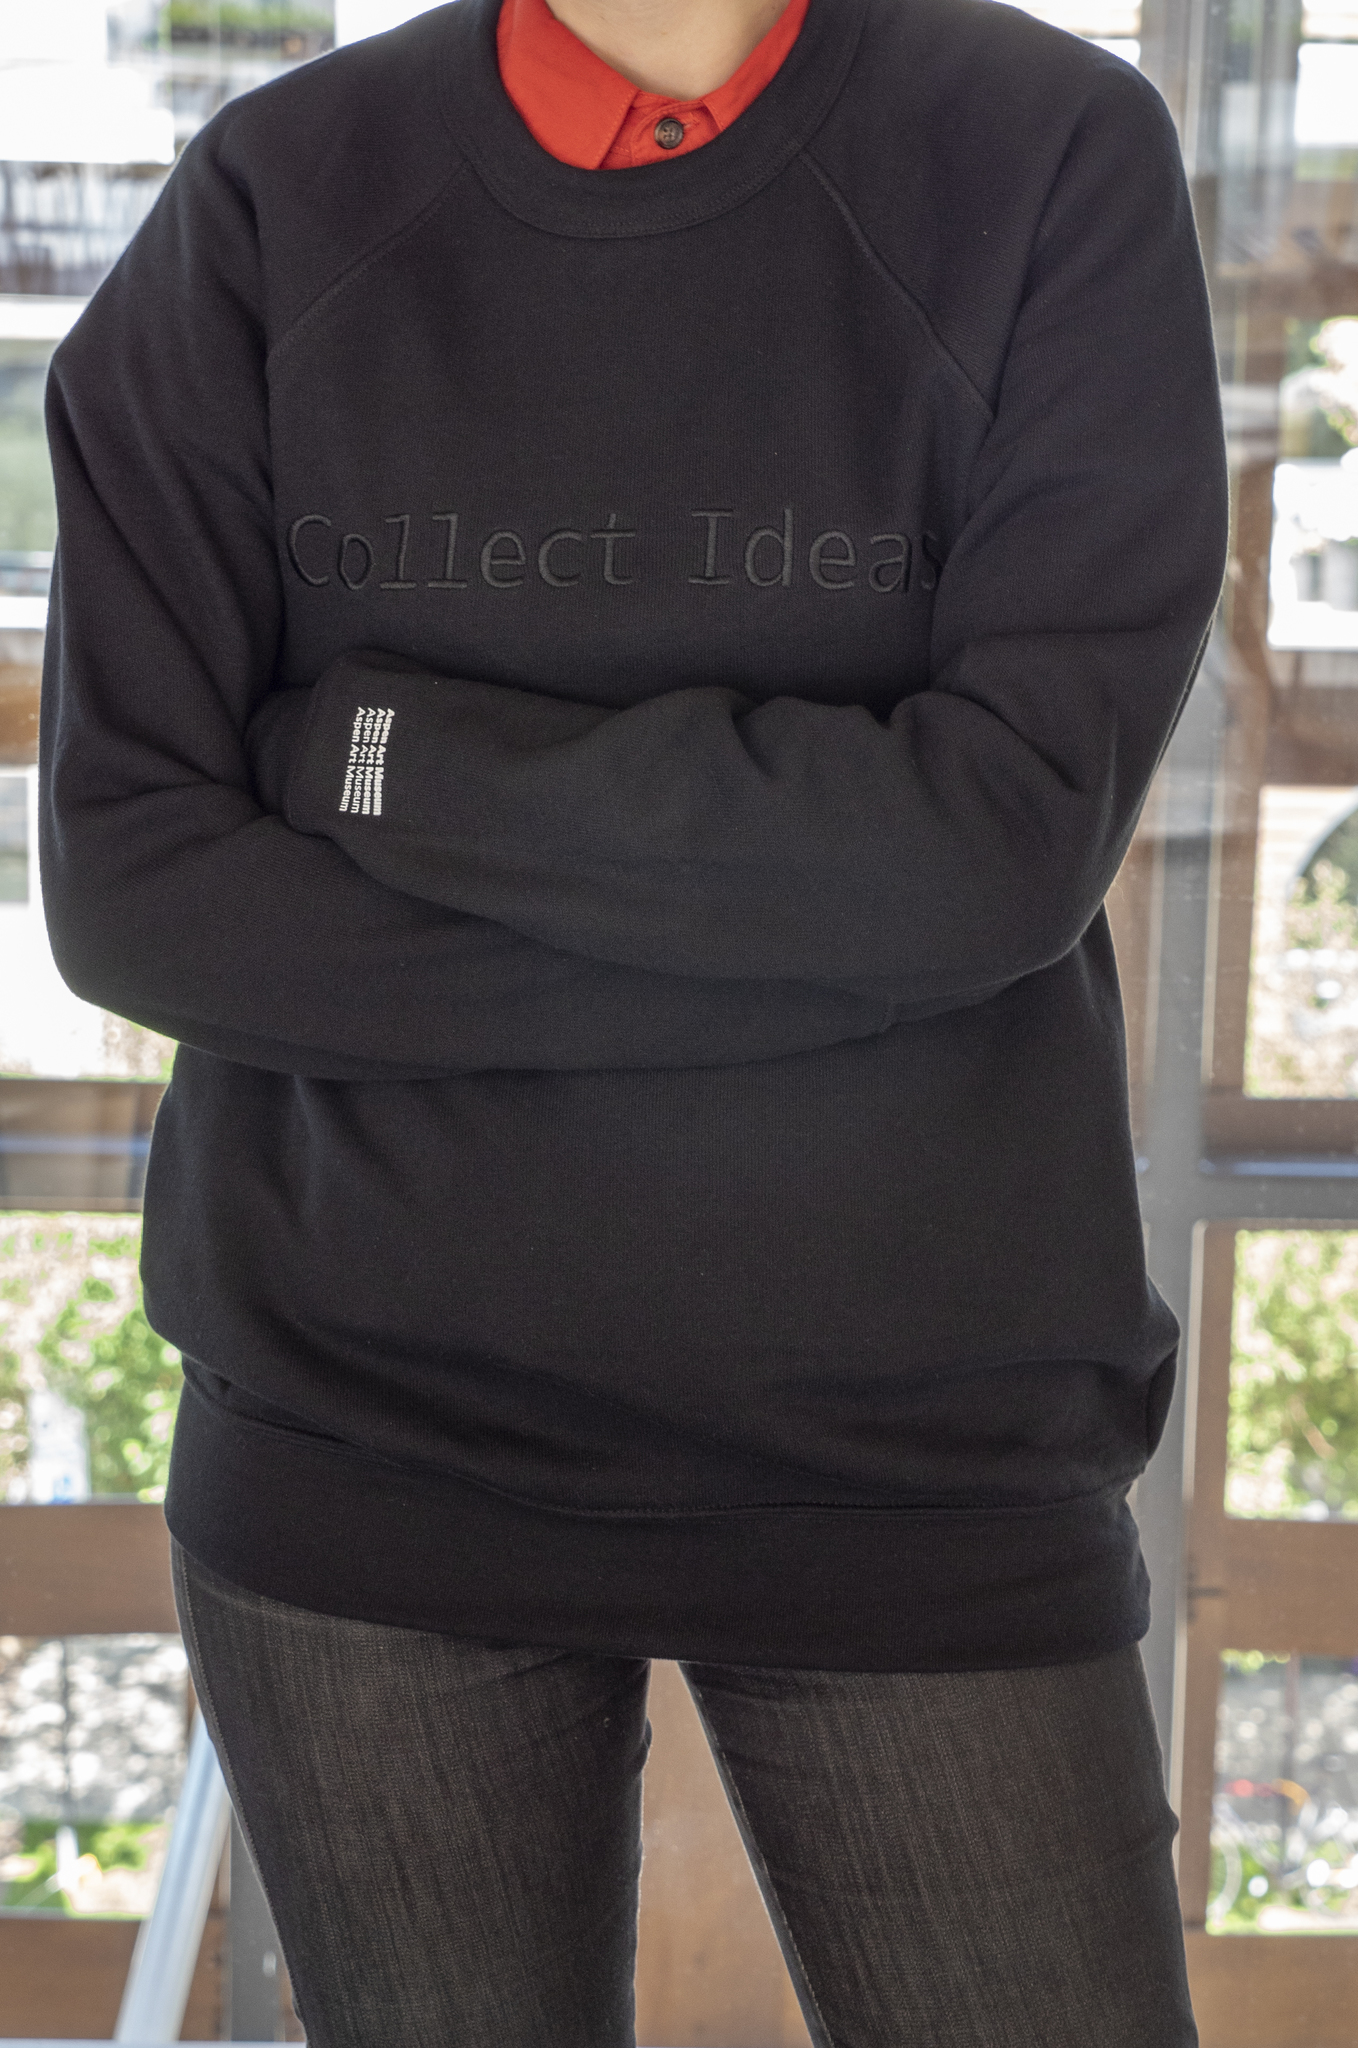 Aam collect ideas pullover